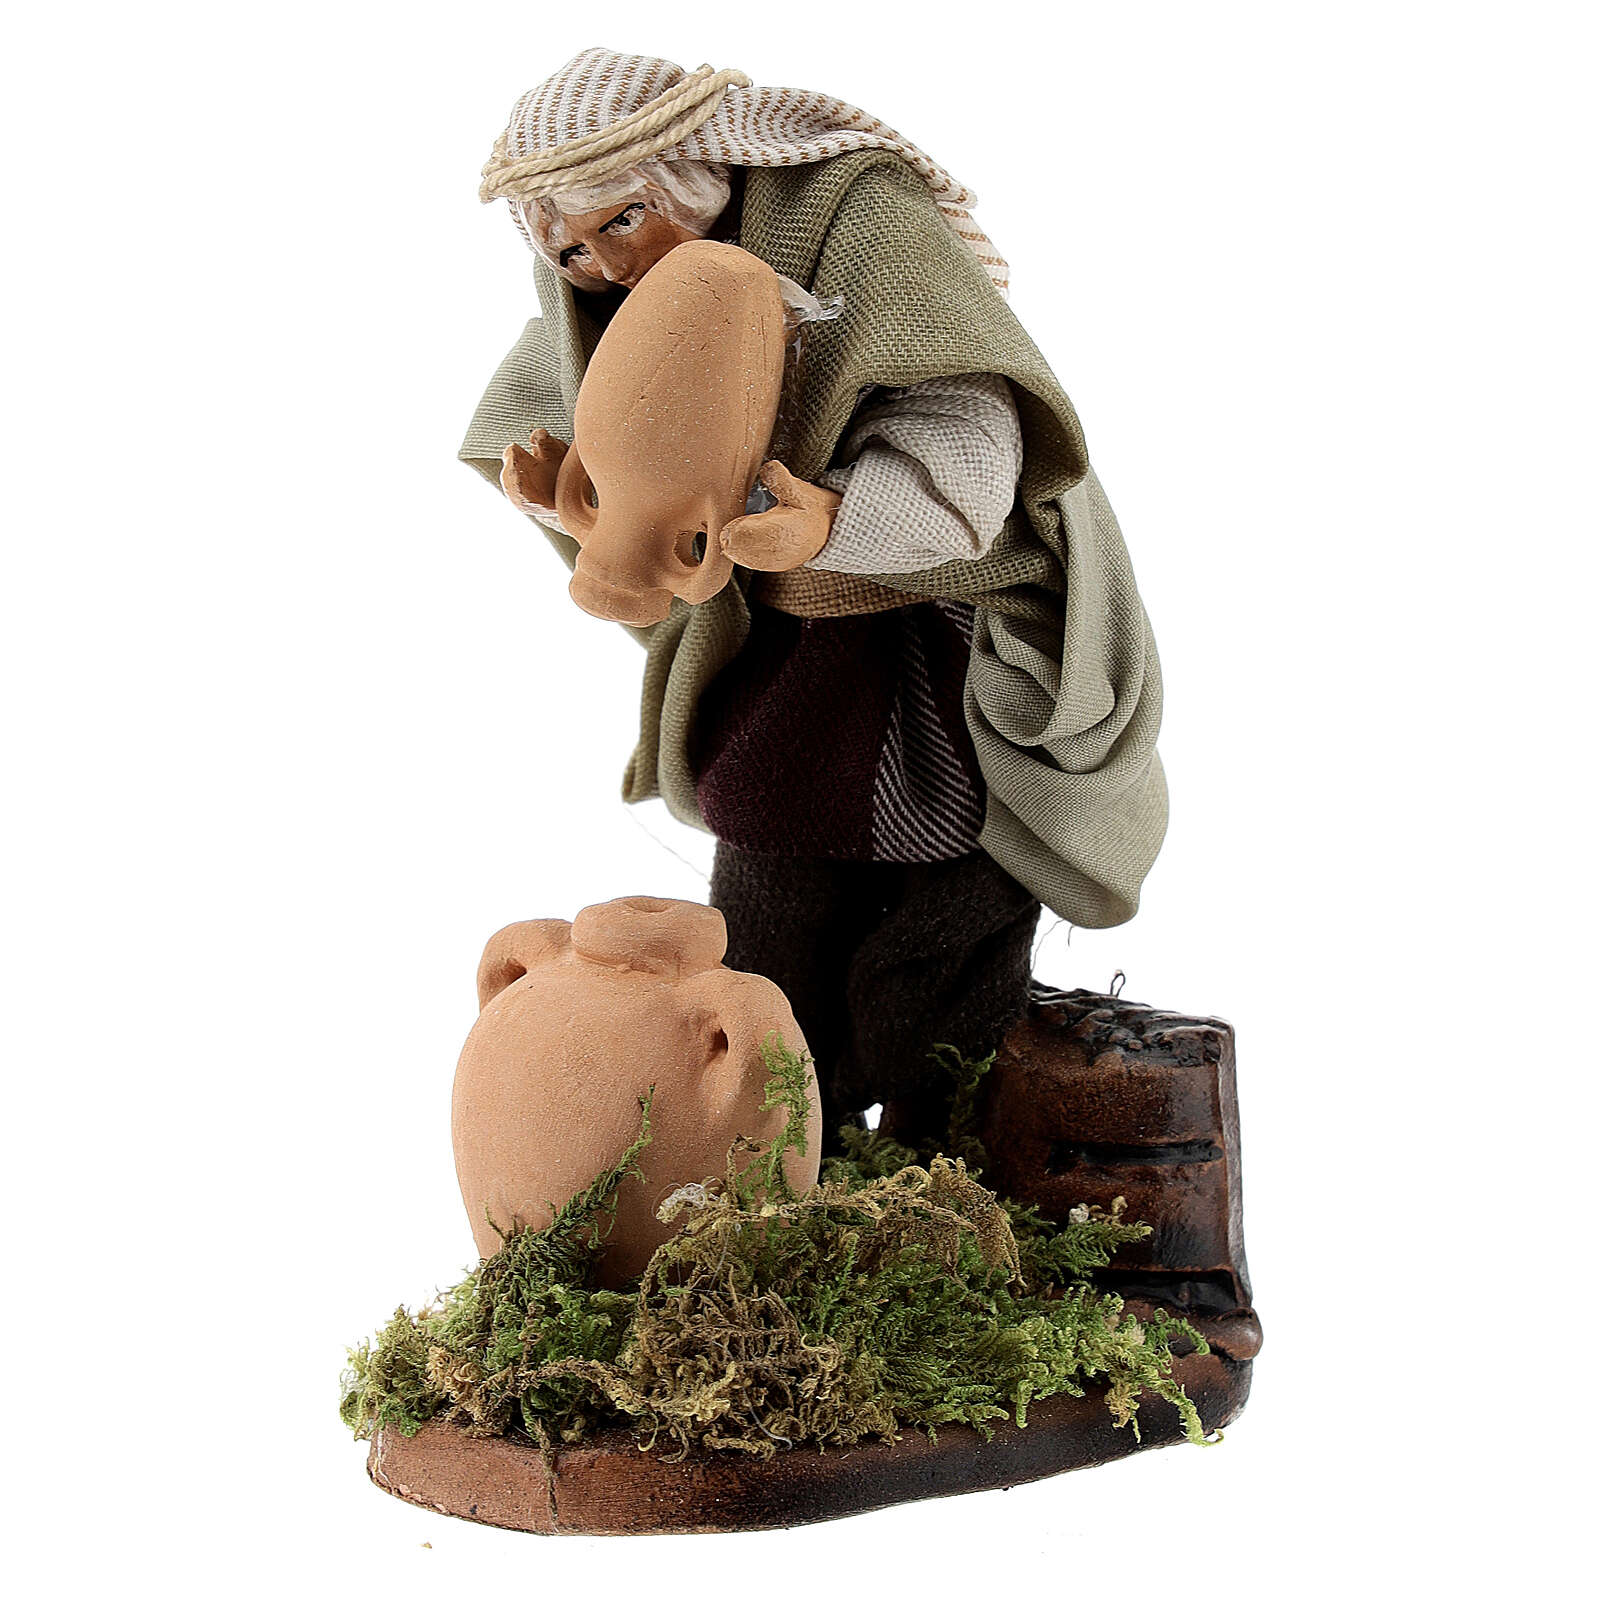 Water seller with amphorae, 8 cm Neapolitan nativity figurine 4